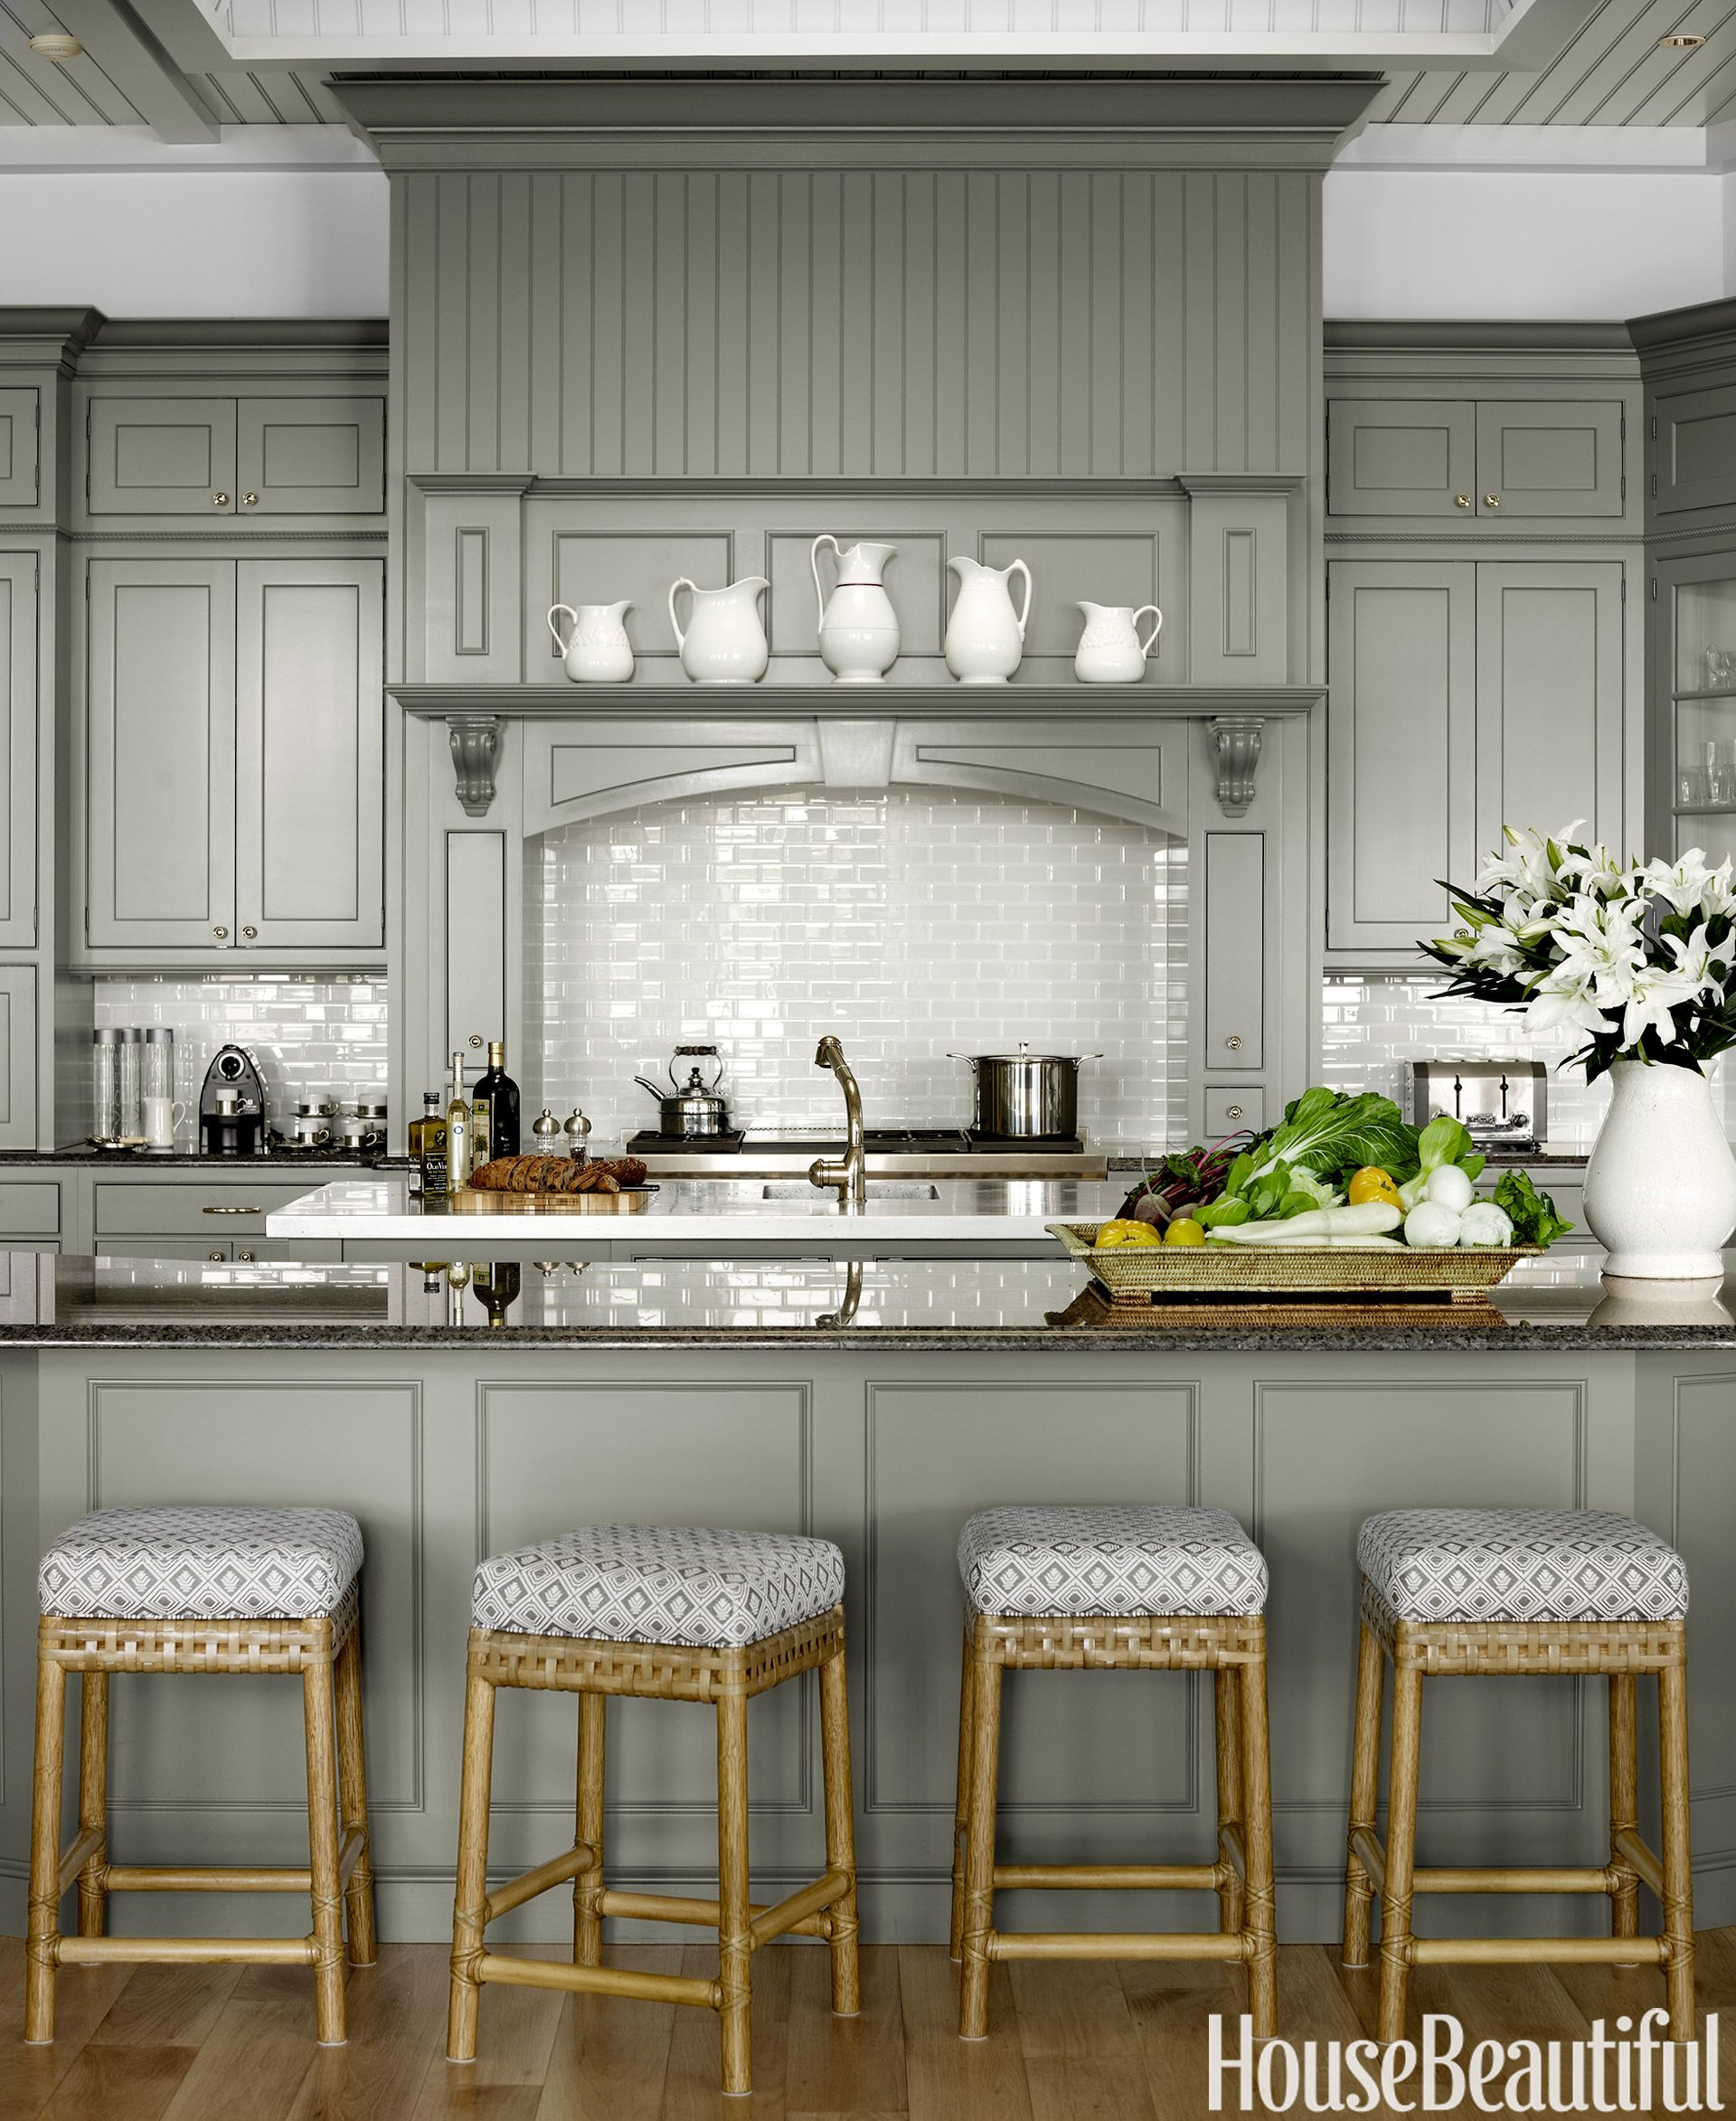 Designer Kitchen Units: These Insanely Gorgeous Kitchens Will Have You Planning A Reno